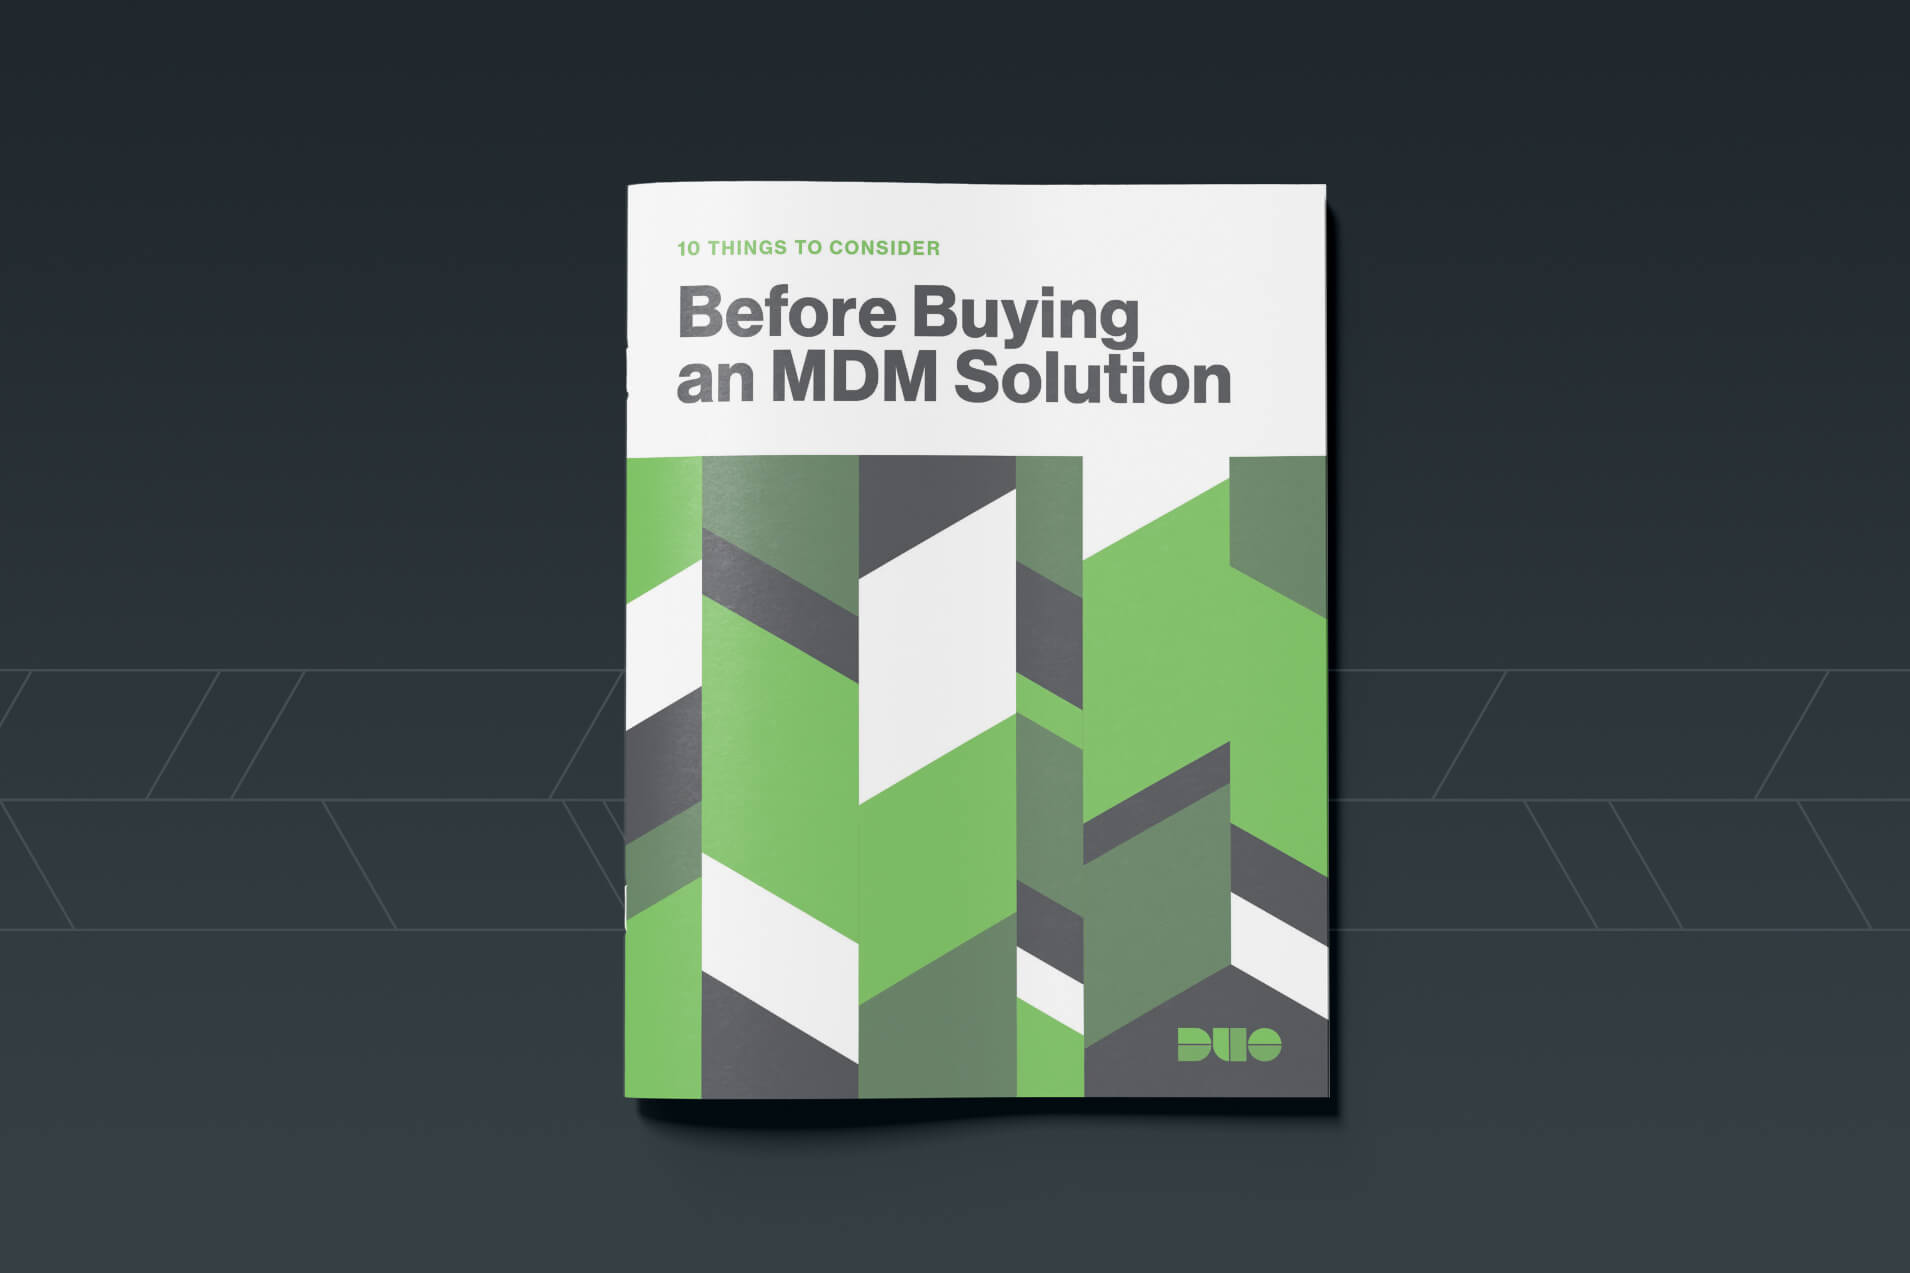 10 Things to Consider Before Buying an MDM Solution | Duo